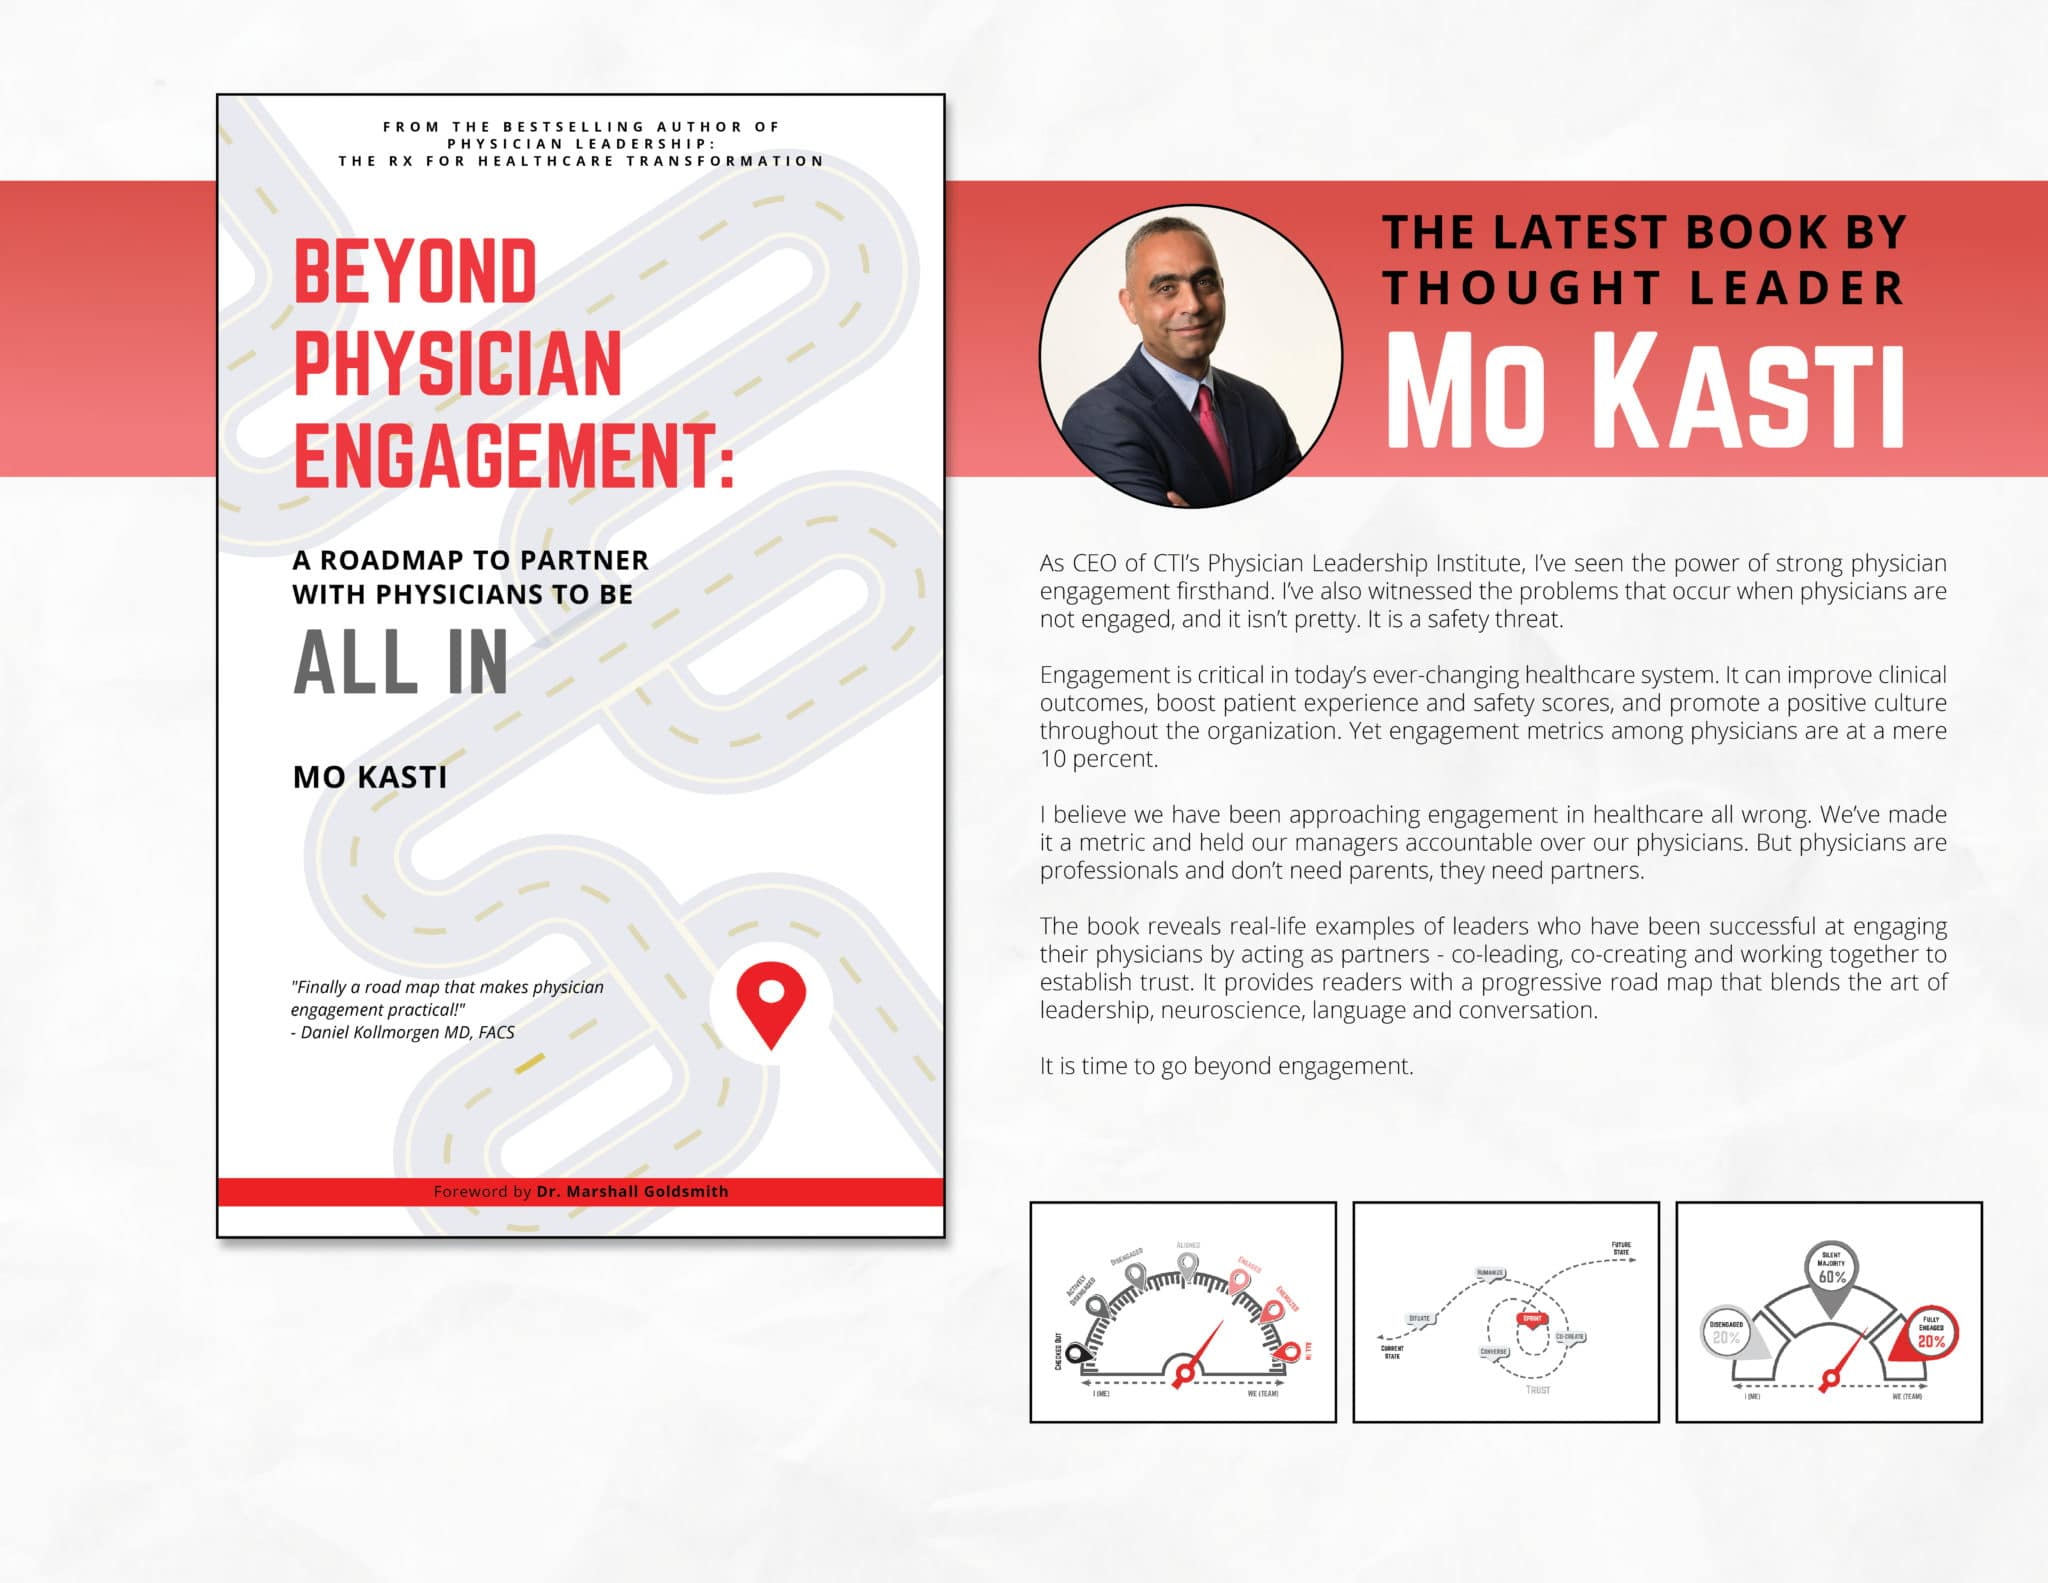 Beyond Physician Engagement: A Roadmap to Partner with Physicians to be All In by Mo Kasti